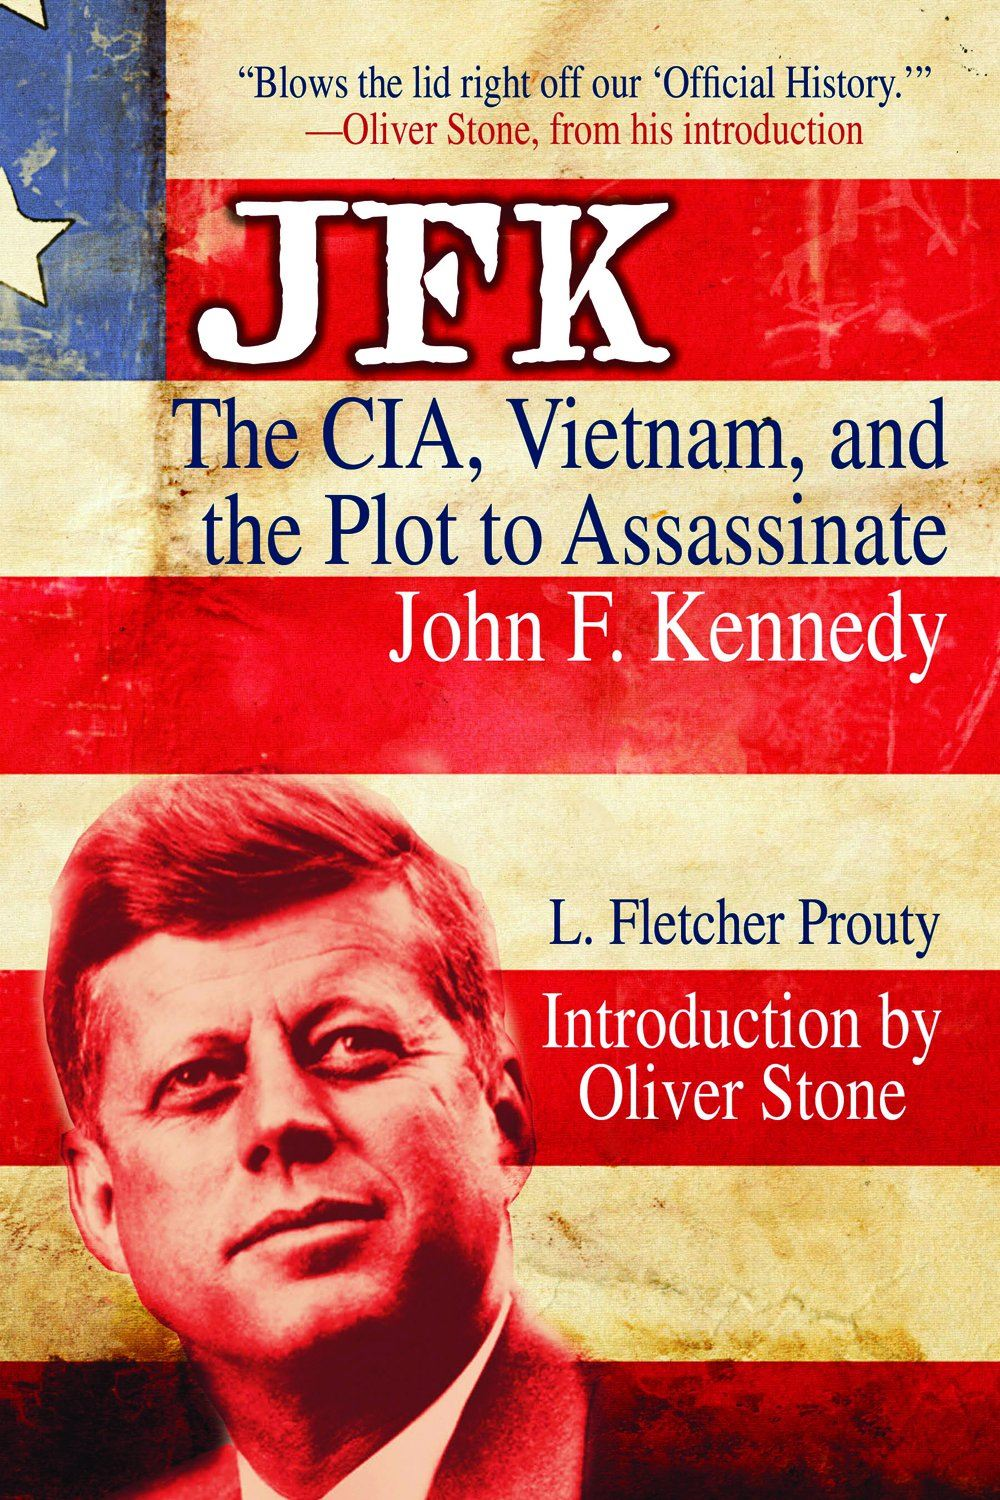 JFK: The CIA, Vietnam, and the Plot to Assassinate John F. Kennedy By: L. Fletcher Prouty, Oliver Stone